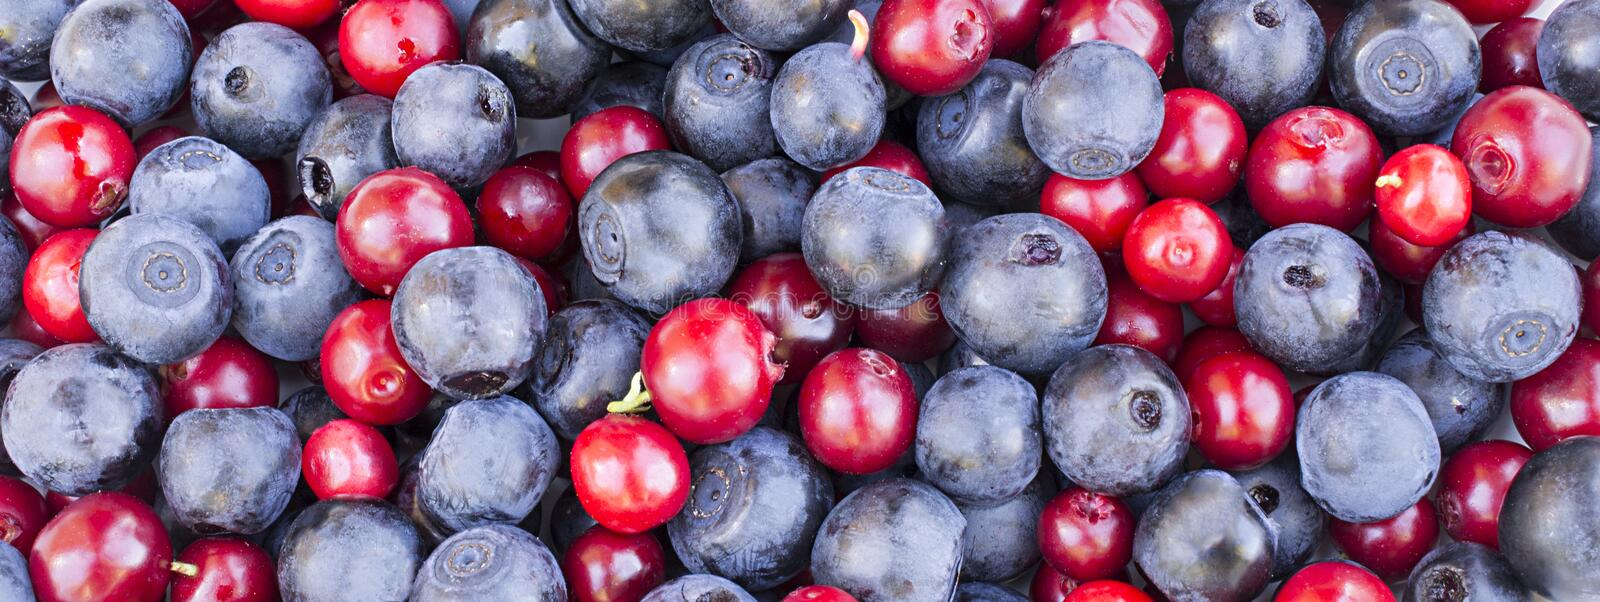 Blueberries and cowberries cranberry stock photography